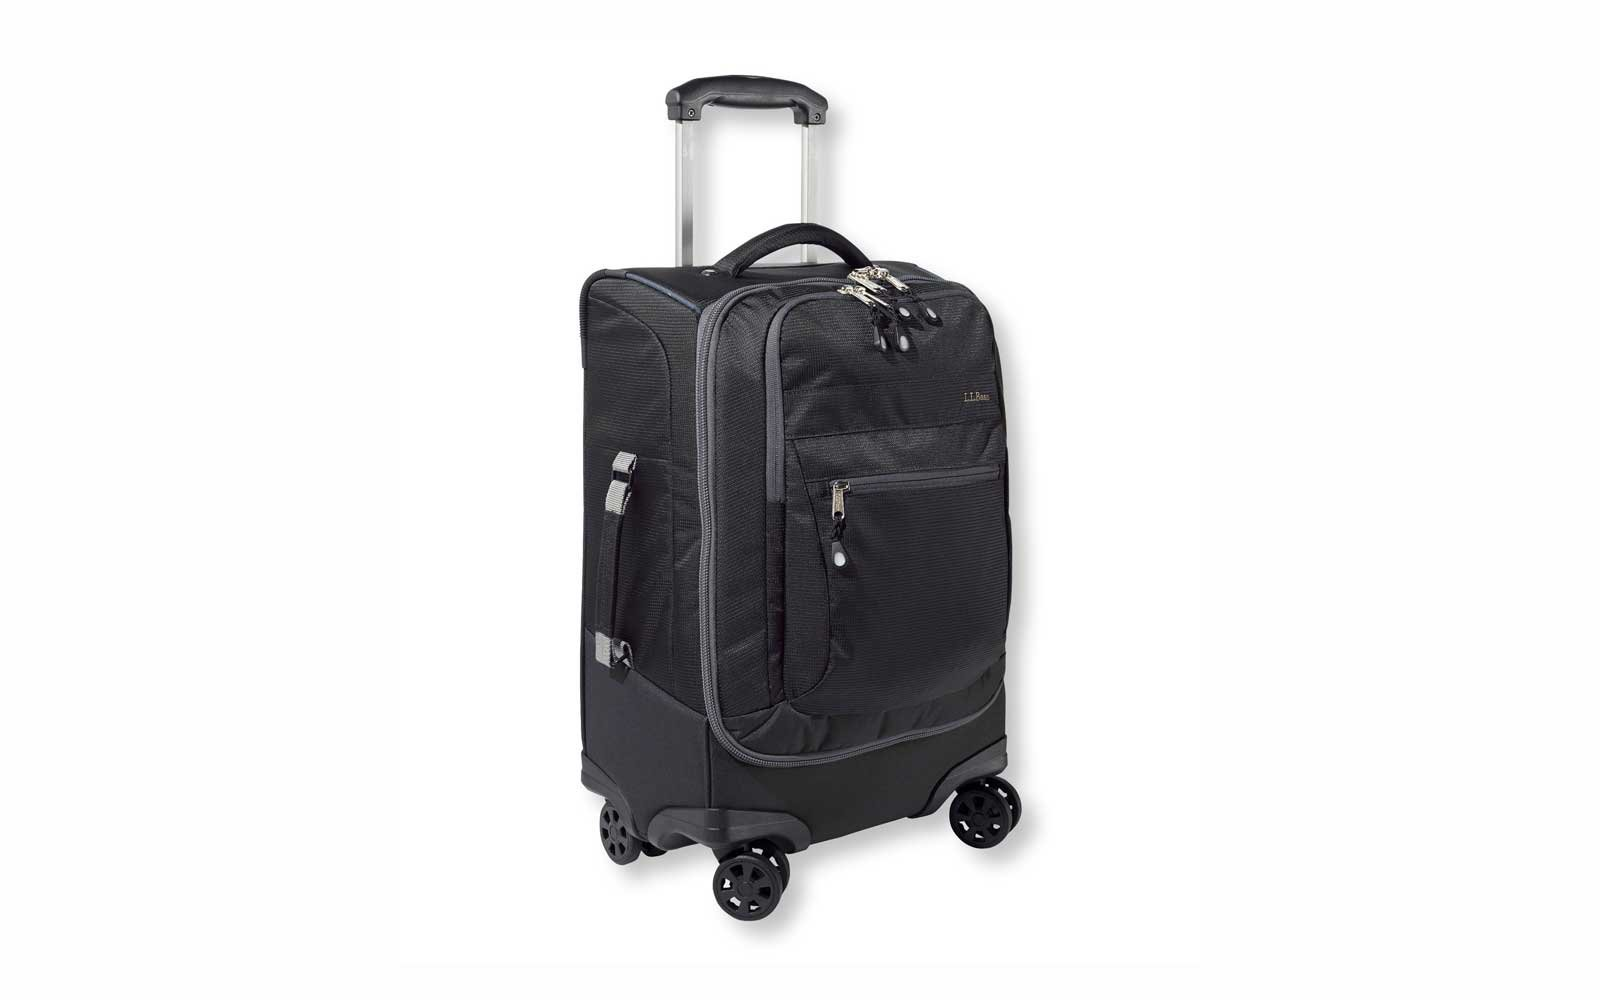 The Best Lightweight Luggage for Traveling Travel Leisure